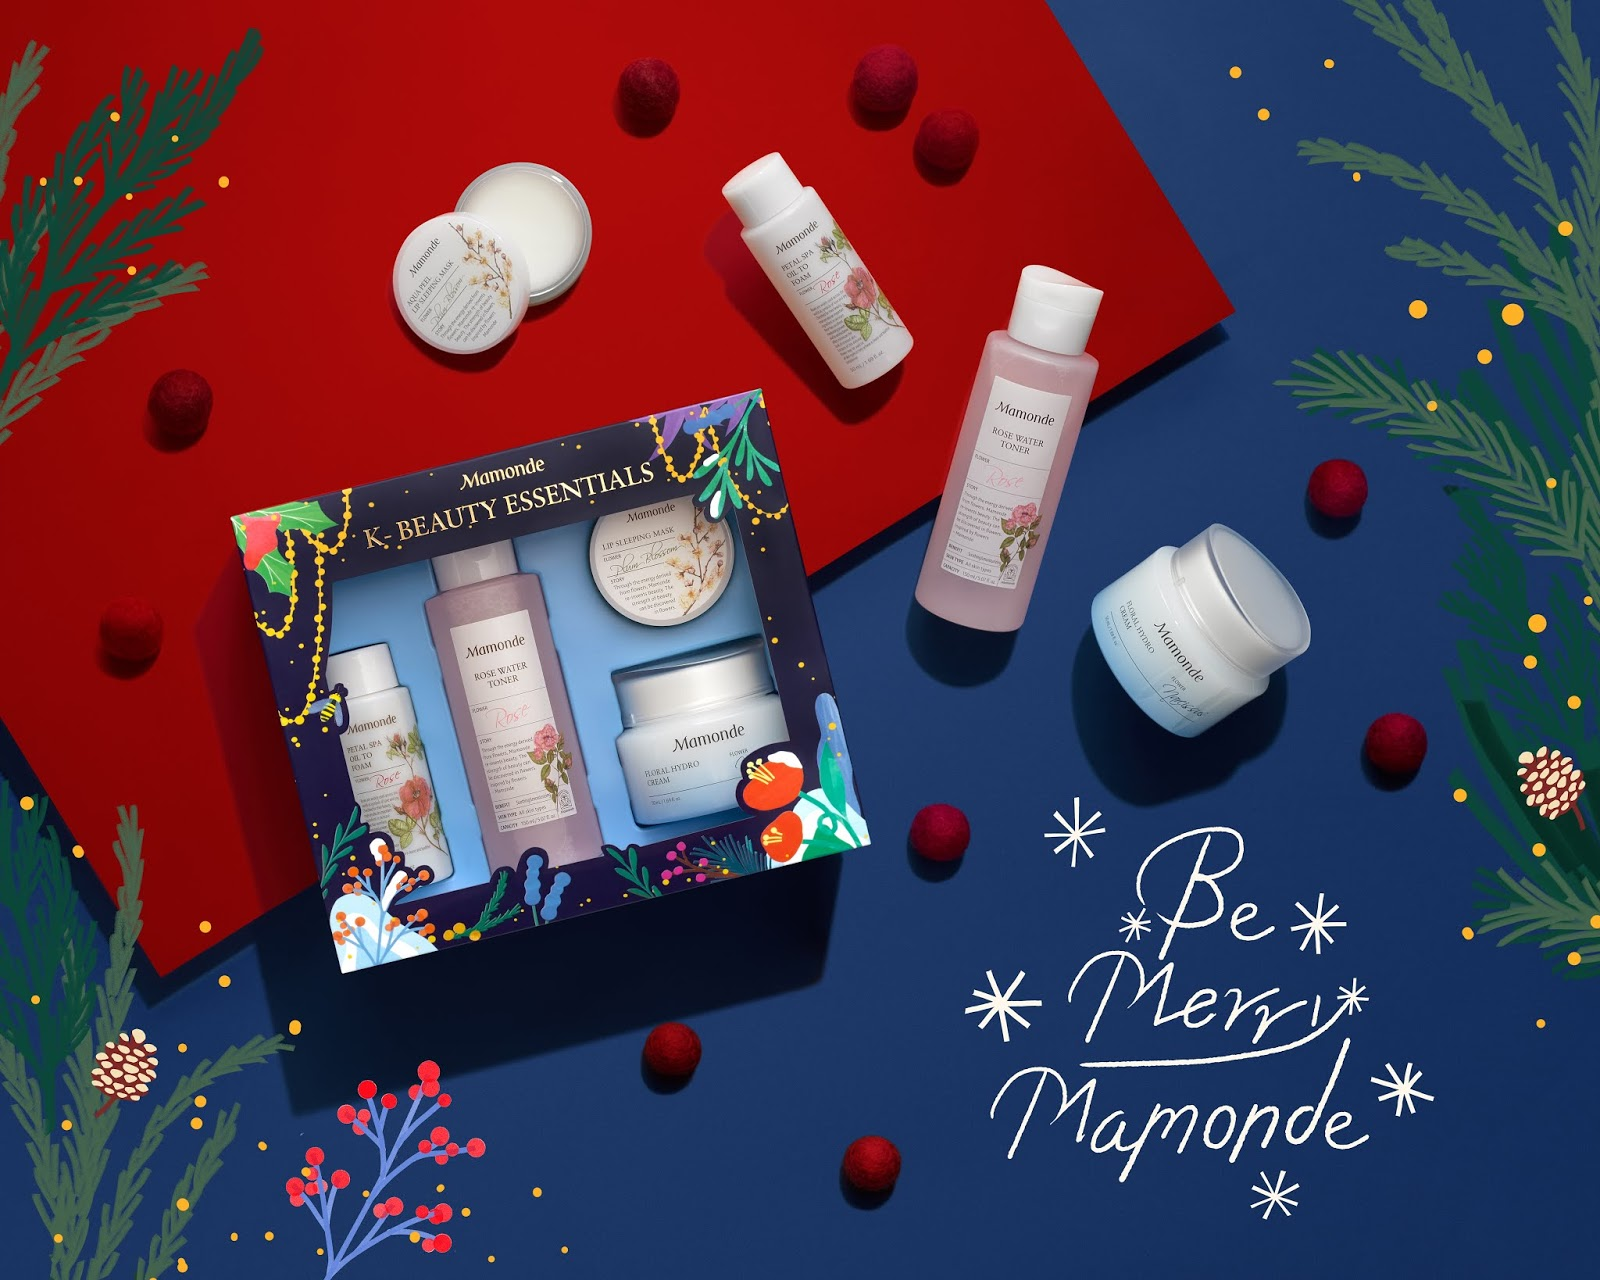 [REVIEW] A CHRISTMAS WISHLIST MUST-HAVE: MAMONDE'S K-BEAUTY ESSENTIALS SET